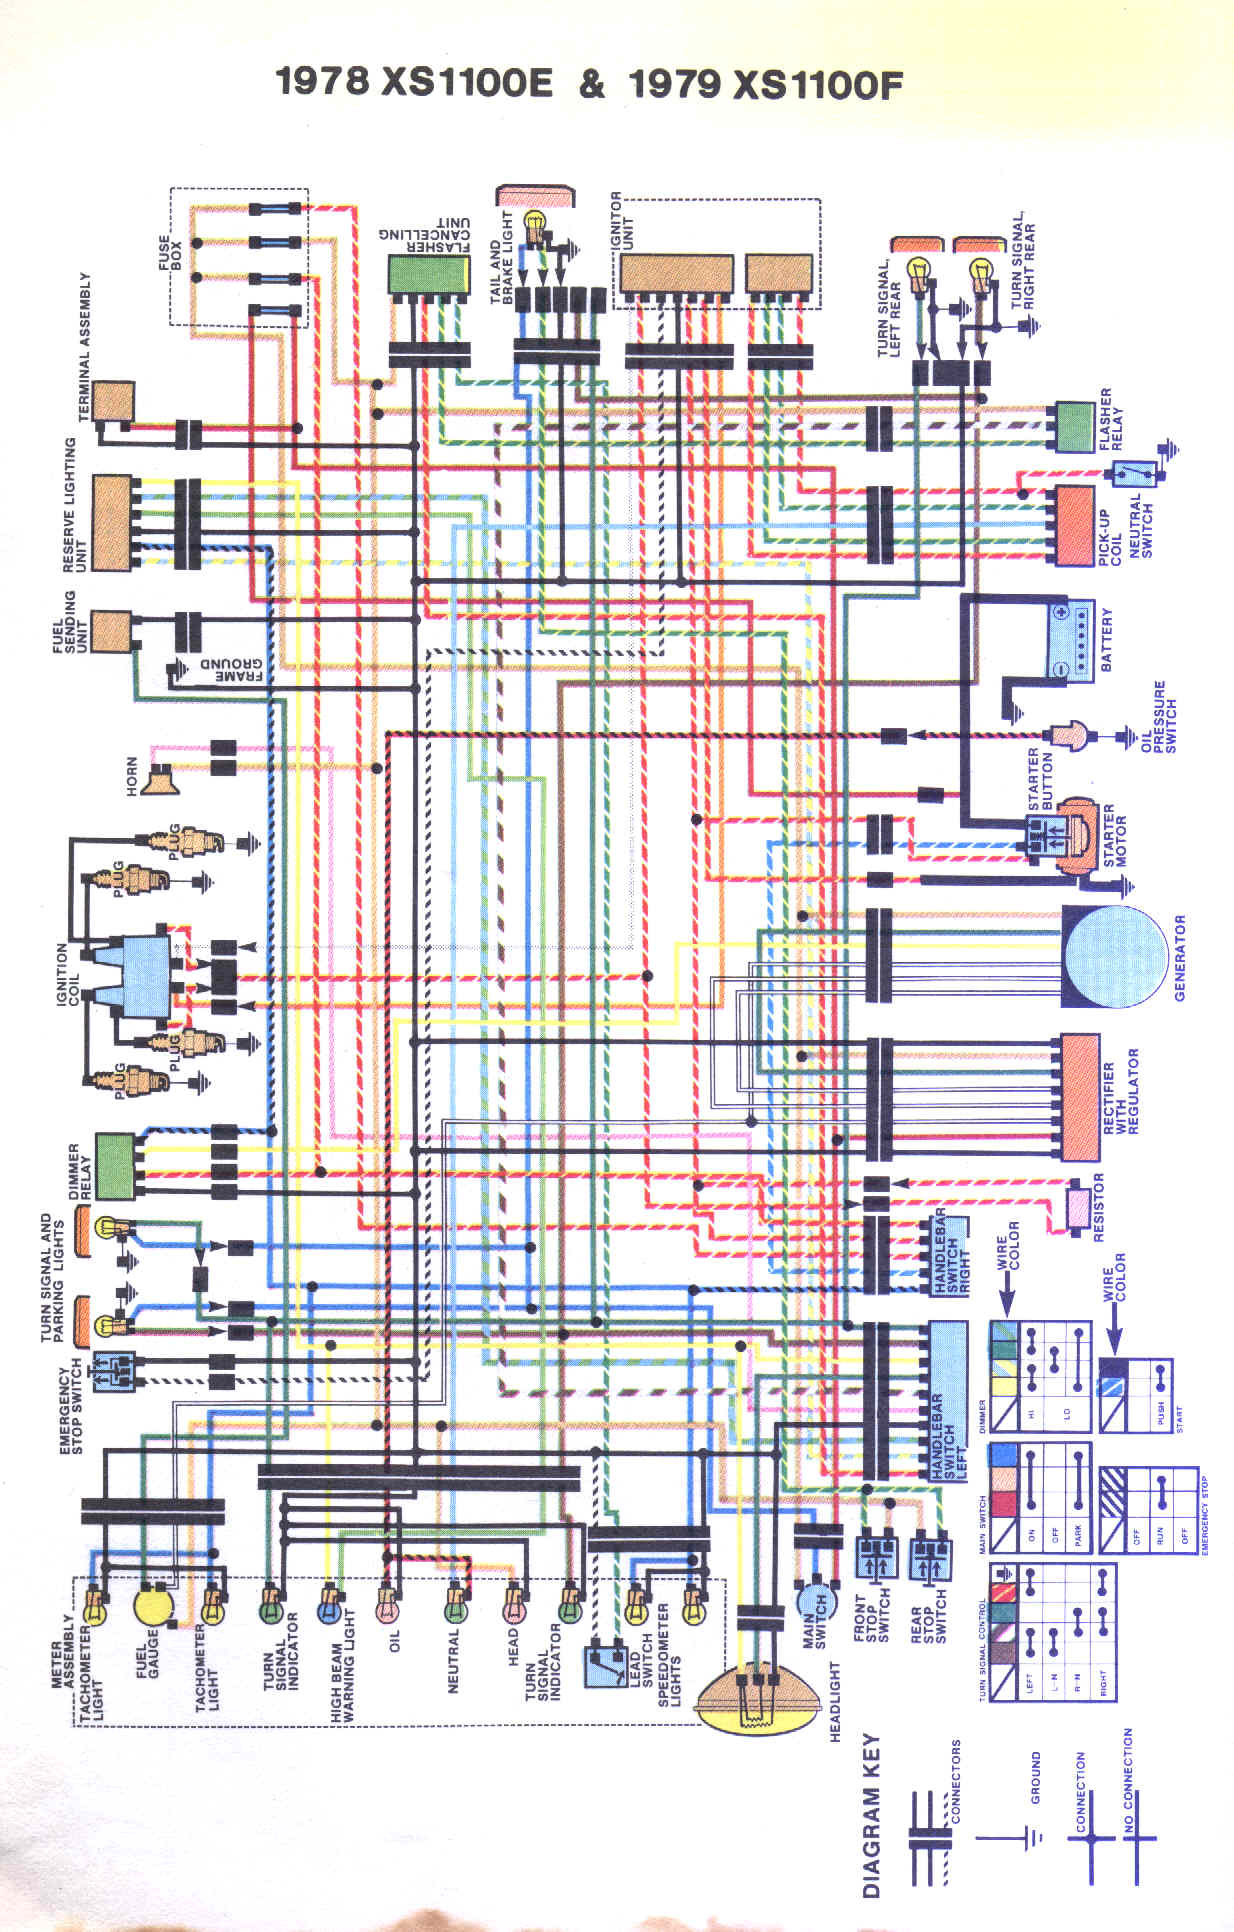 1979 firebird wiring diagram with Showthread on Location Of My Car By Vin Number On also 1964 Cadillac Fuse Box Cadillac Fuse Blow  e2 80 a2 Mifinder Co likewise 14112 together with Driveline as well 78 Trans Am Wiring Diagram.